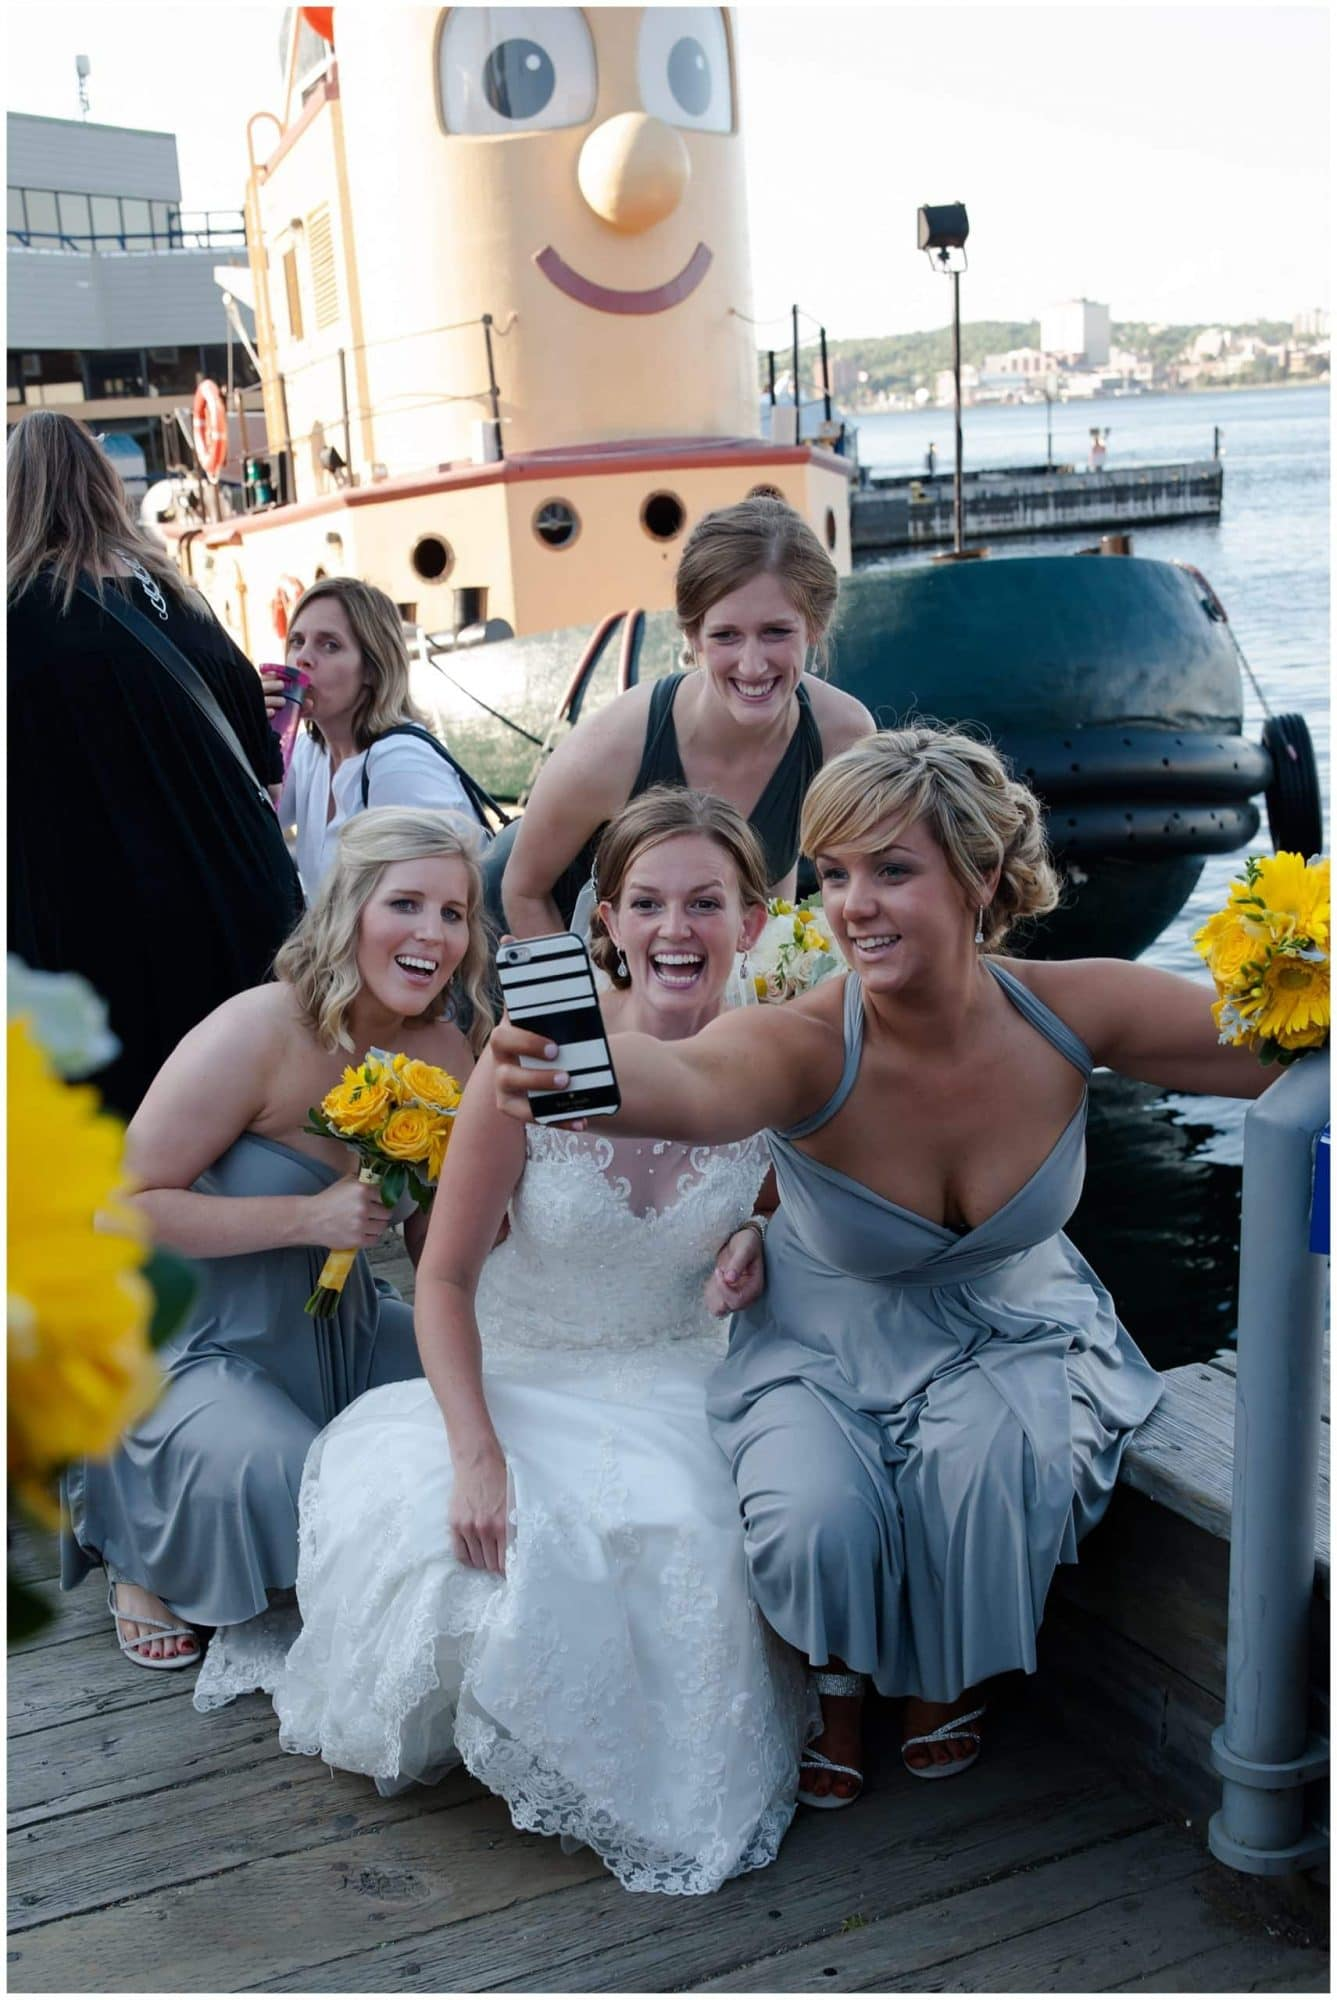 The bride snaps a selfie of her and her bridesmaids infront of Theodore the tug boat in Halifax, NS.